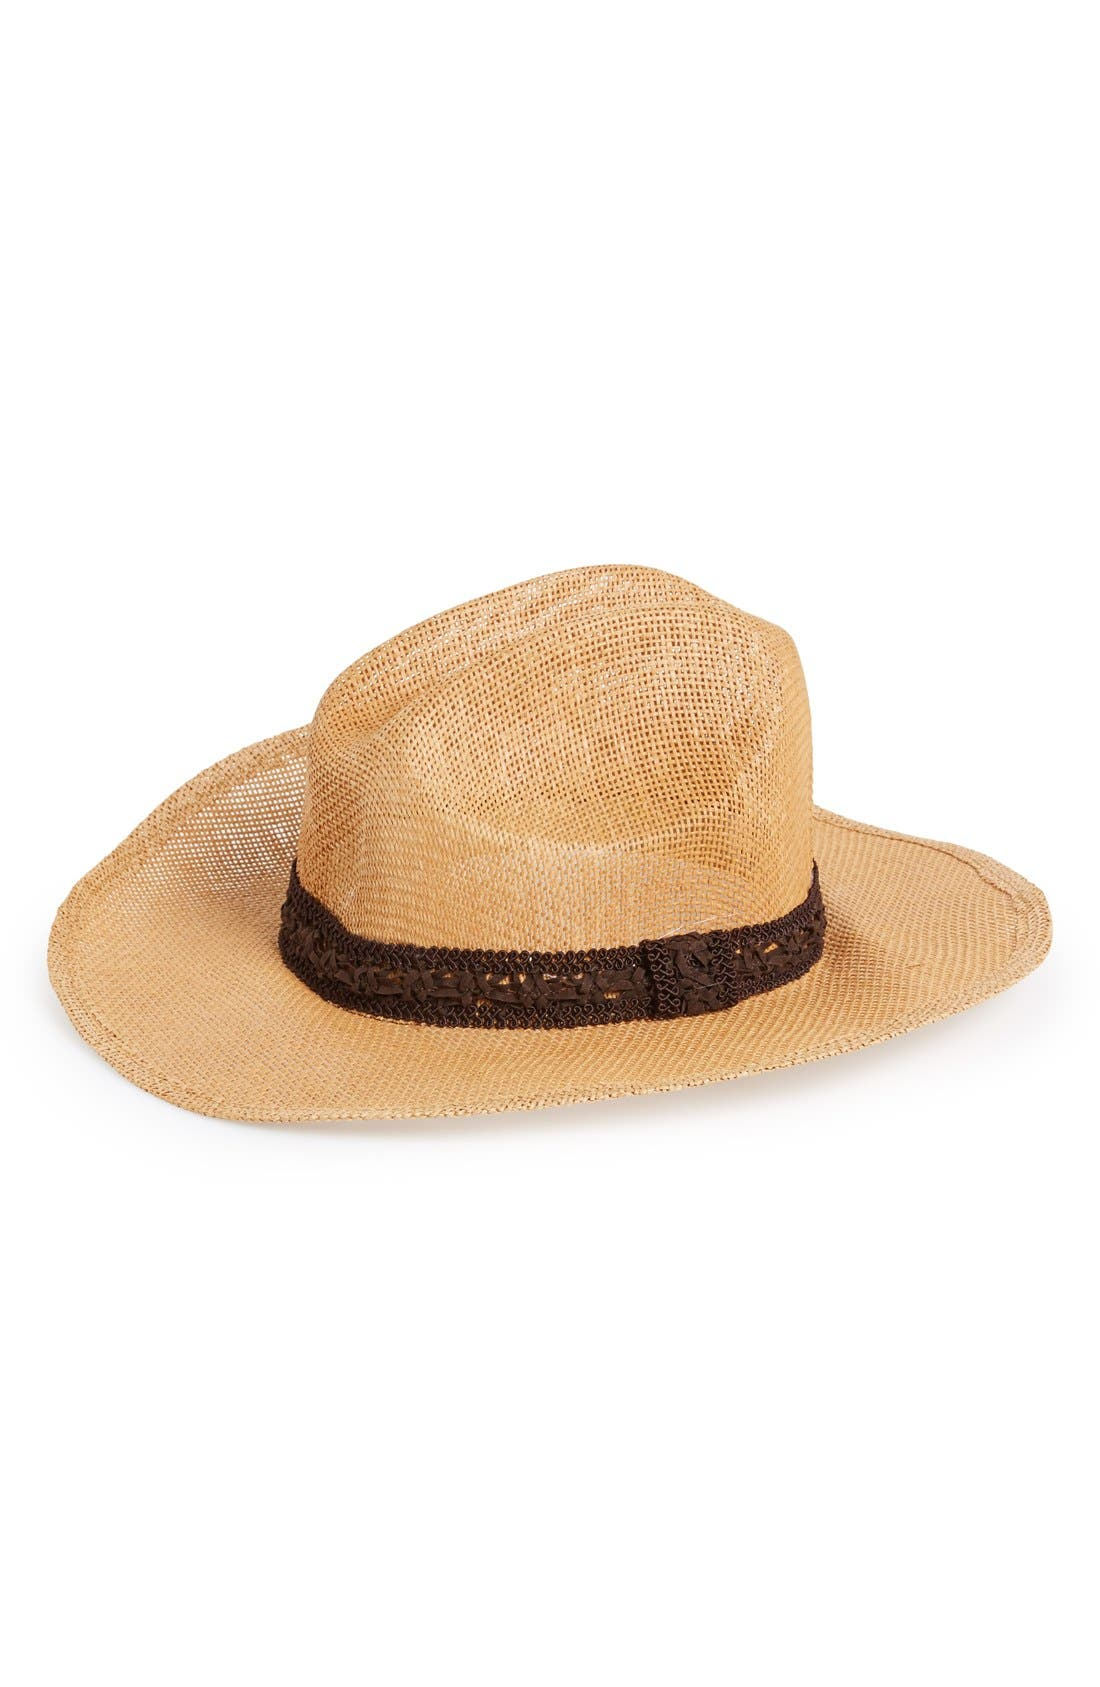 Alternate Image 1 Selected - Amici Accessories Straw Cowboy Hat (Juniors)